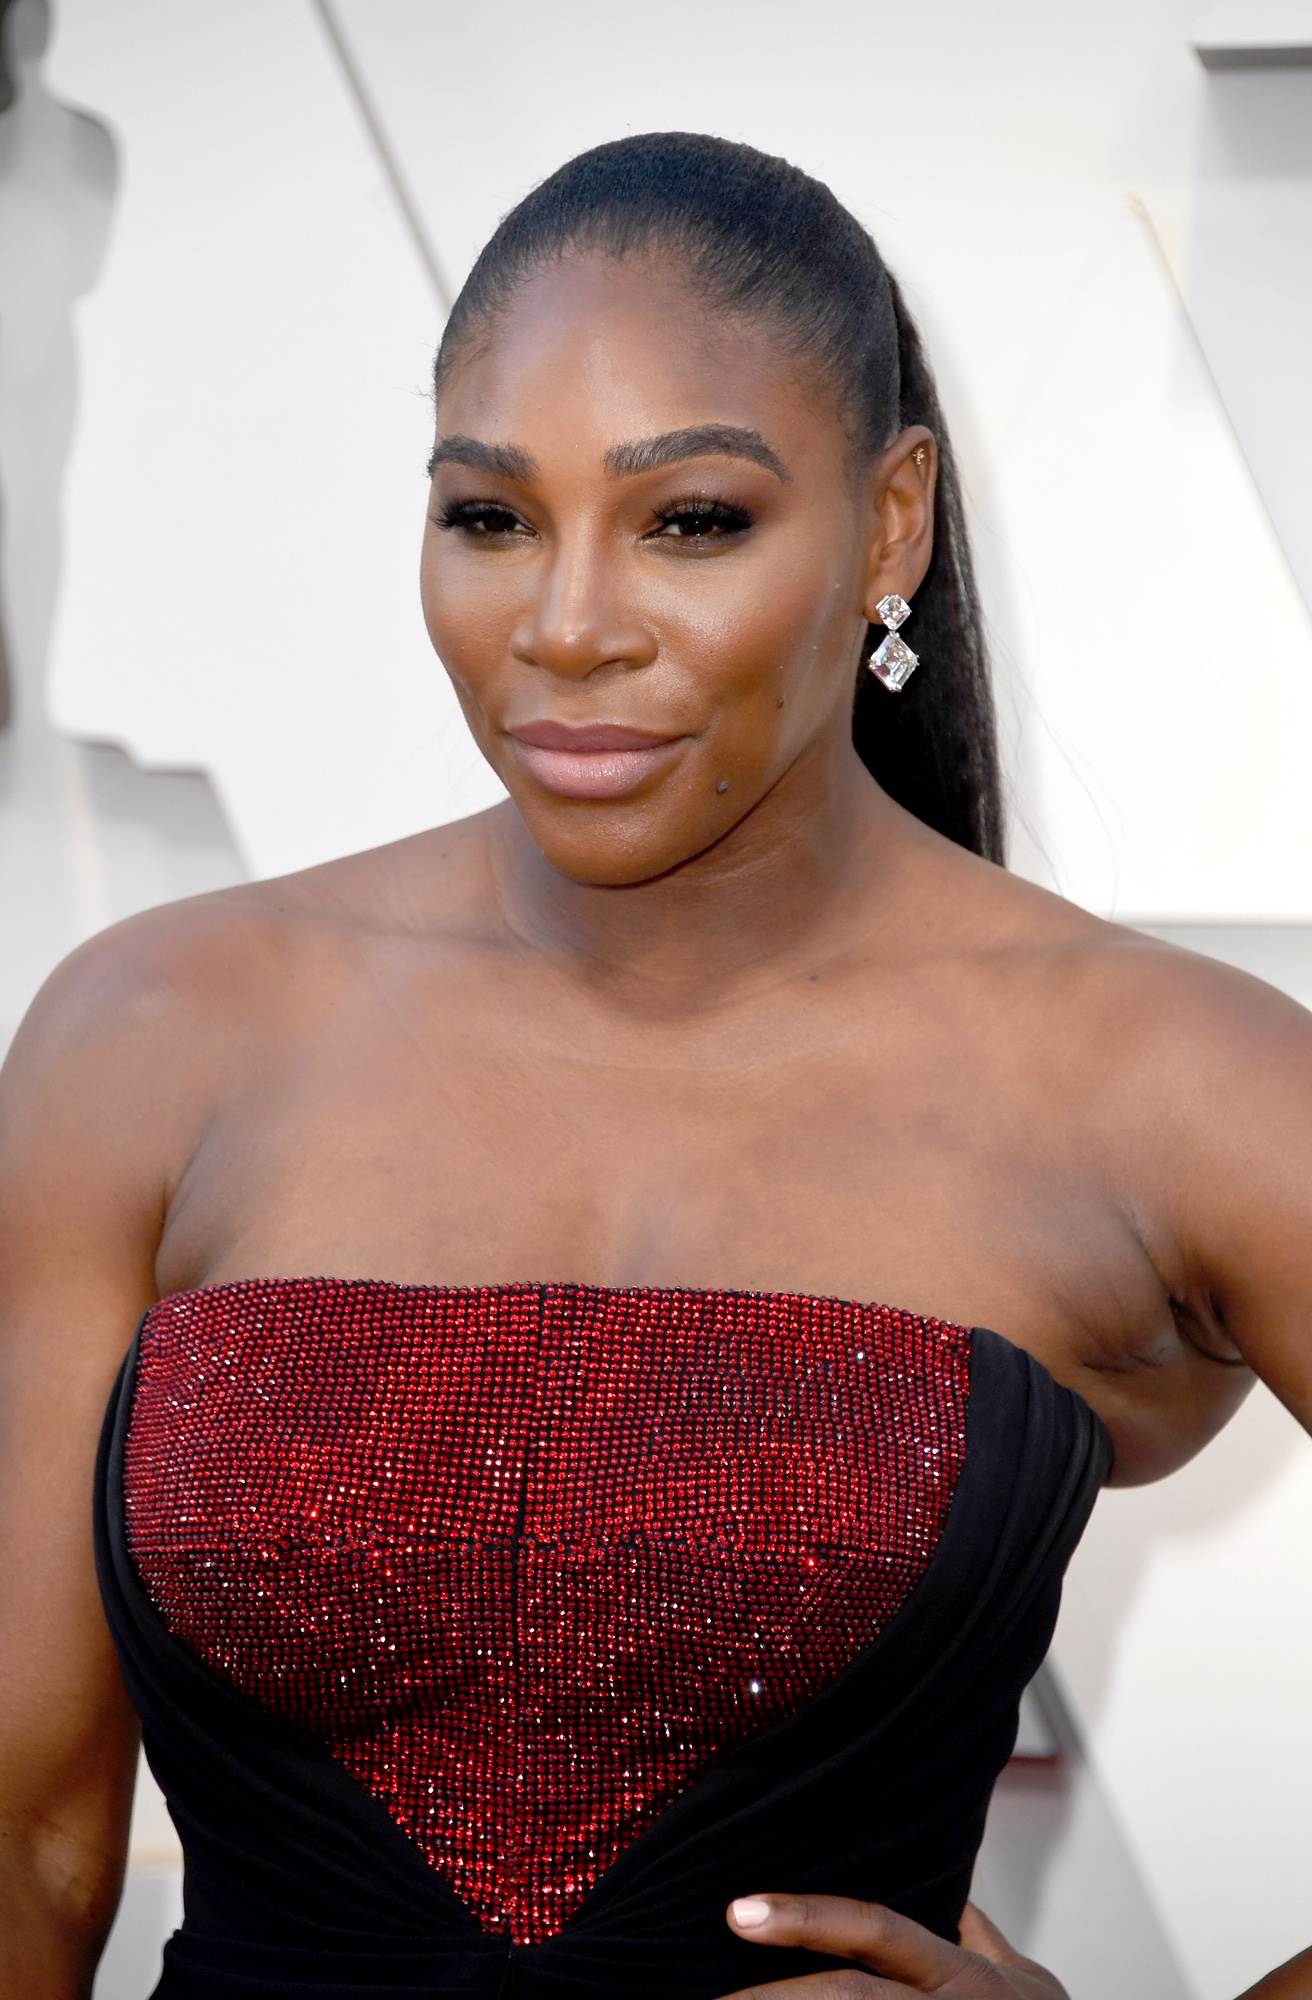 Serena Williams Reveals She Saw A Therapist Following Her 2018 U.S. Open Outburst